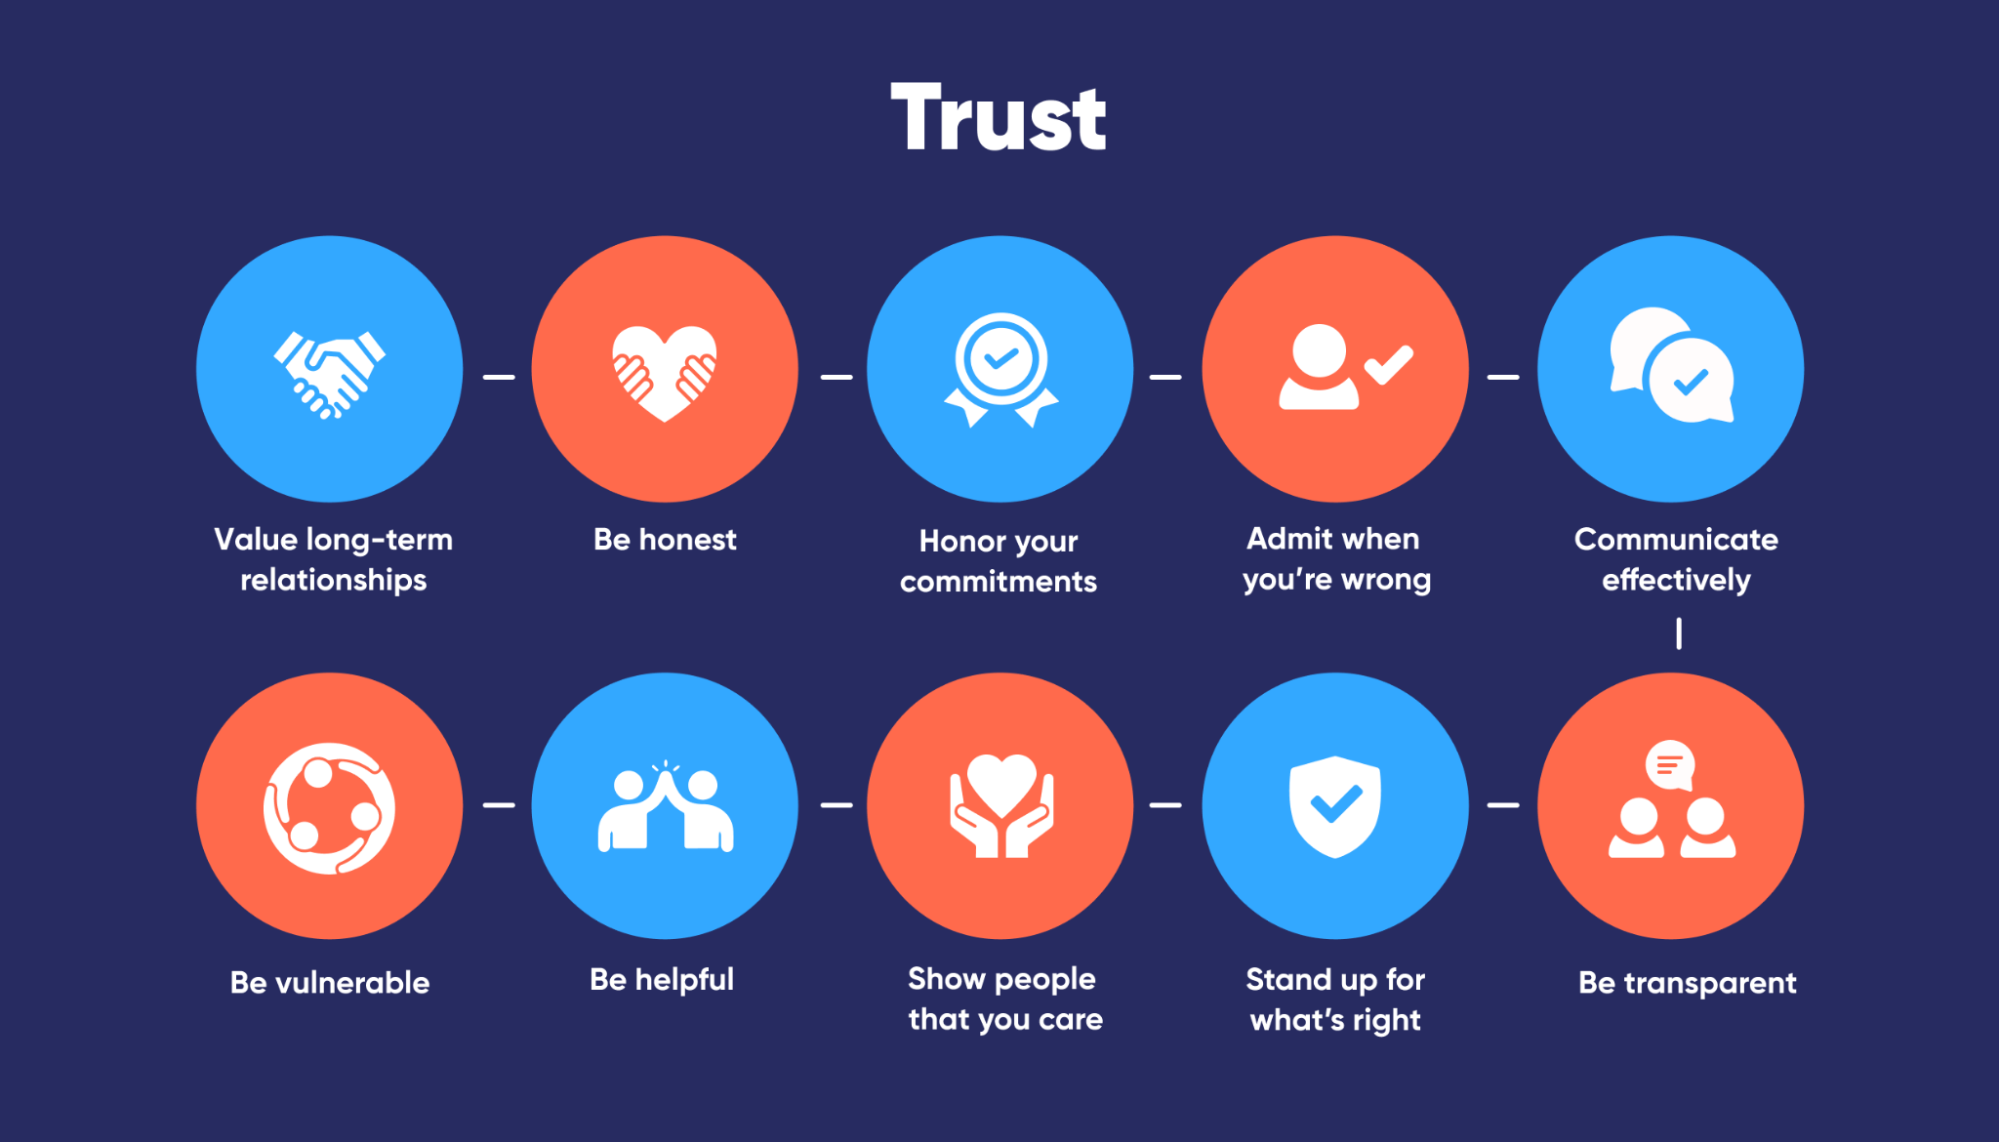 guide-to-building-trust-how-to-build-trust